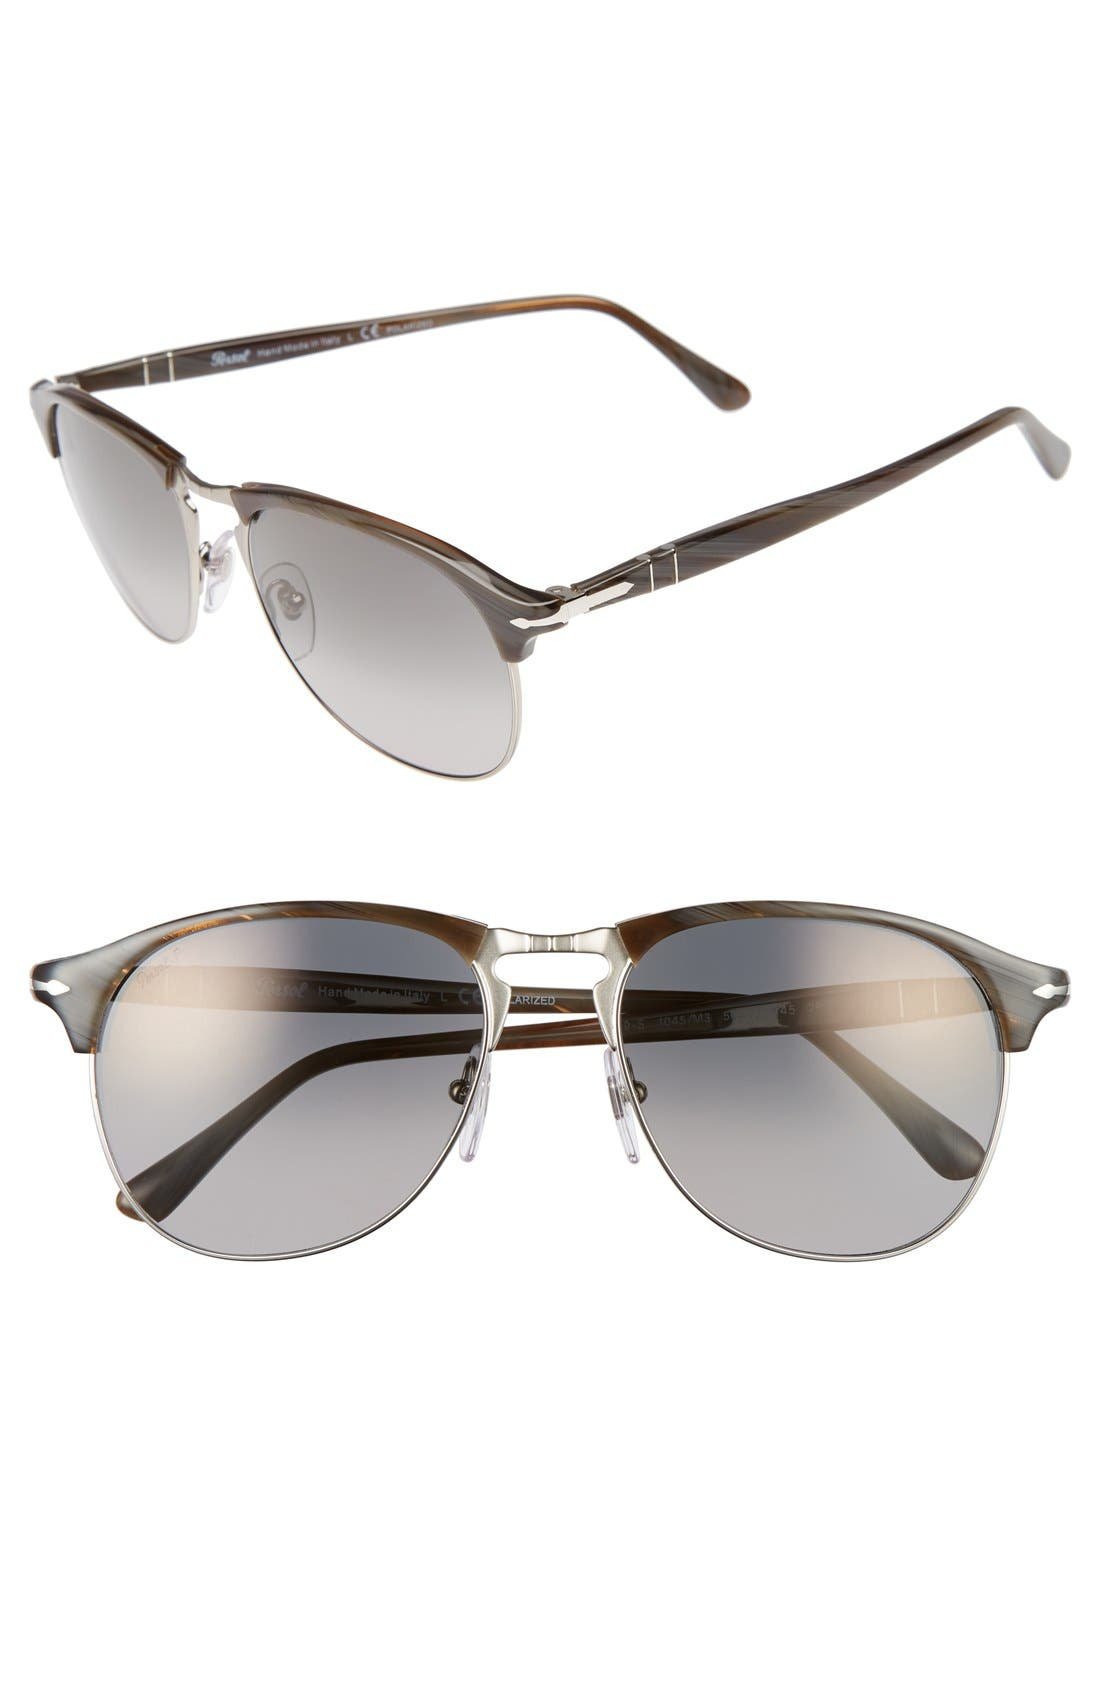 56mm Keyhole Sunglasses,                             Alternate thumbnail 2, color,                             GREY HORN